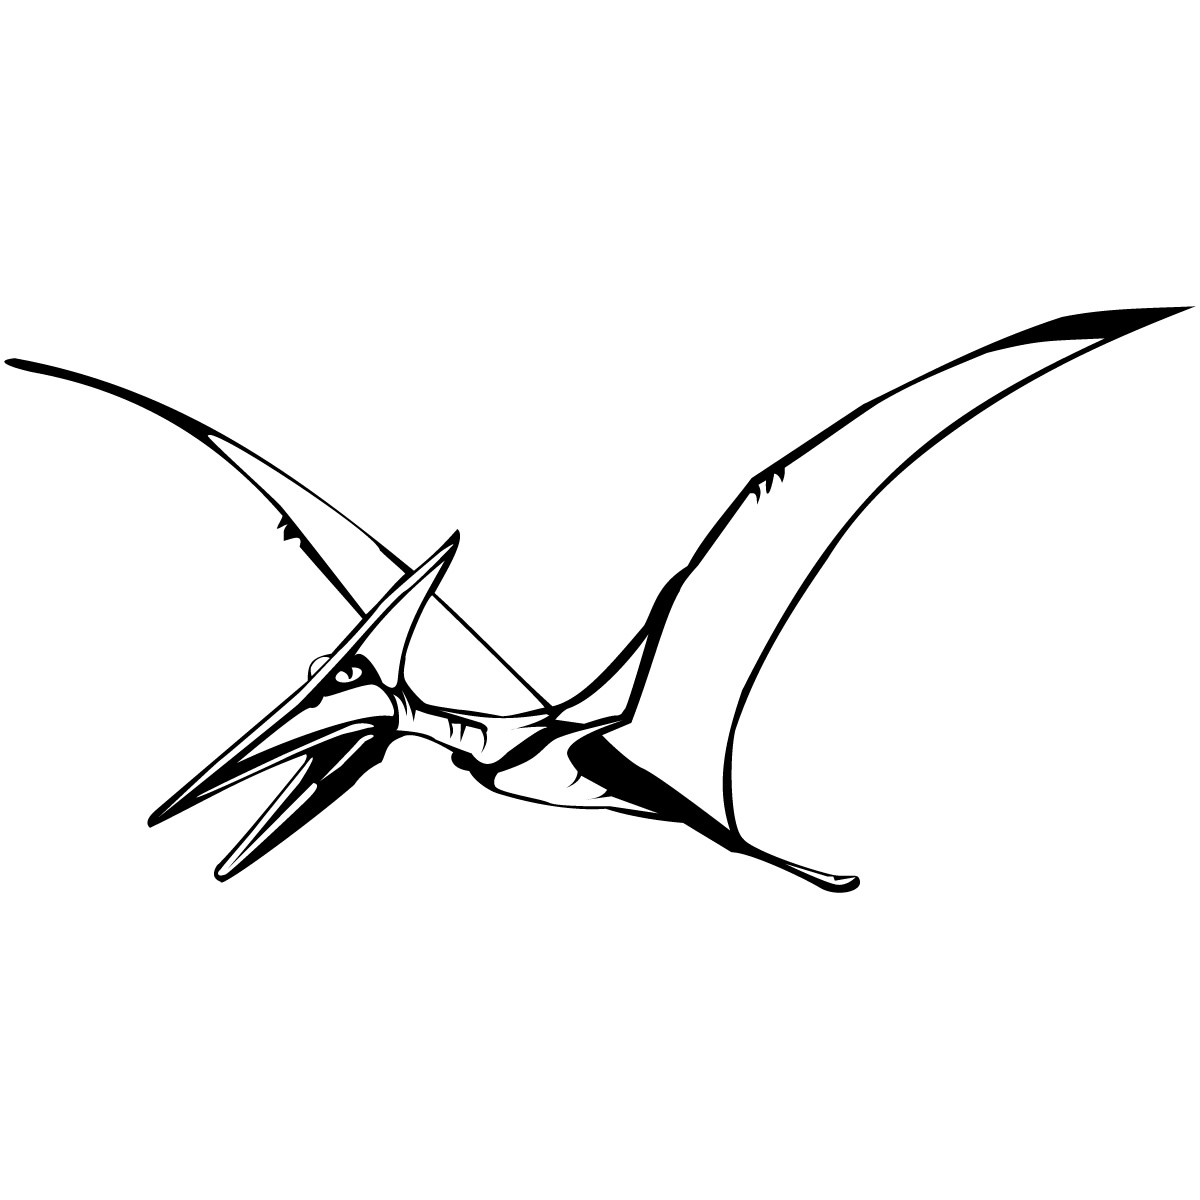 Pterodactyl clipart free jpg freeuse download Free Pictures Of Flying Dinosaurs, Download Free Clip Art ... jpg freeuse download